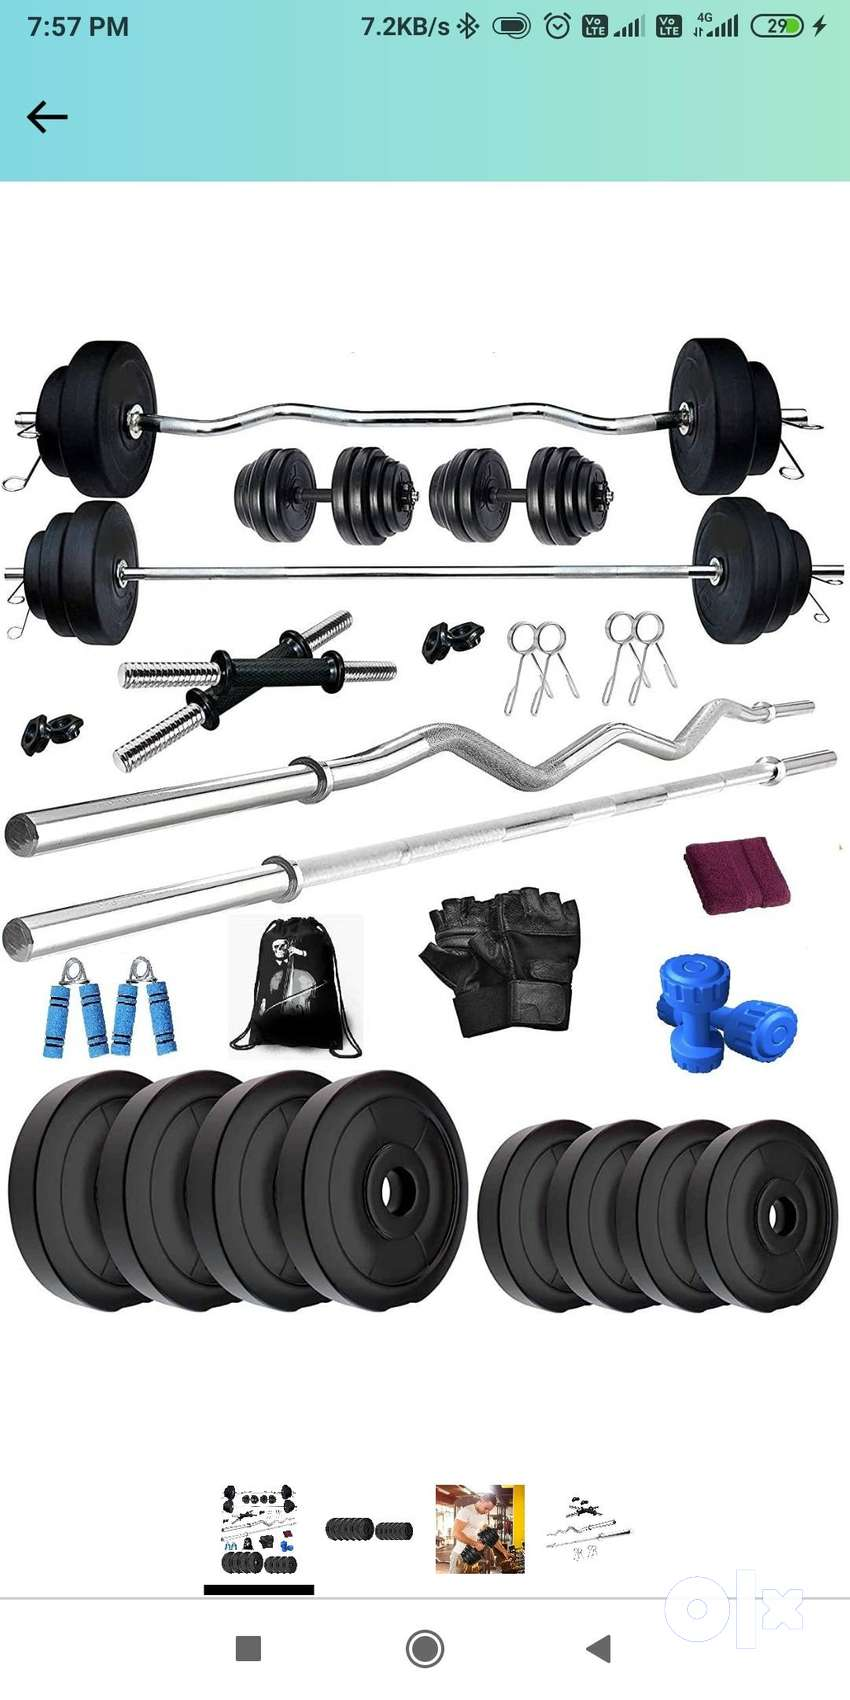 BodyFit B-Deluxe Home Gym Set PVC 40 kg Weight Plates, 4 Rods Exercise